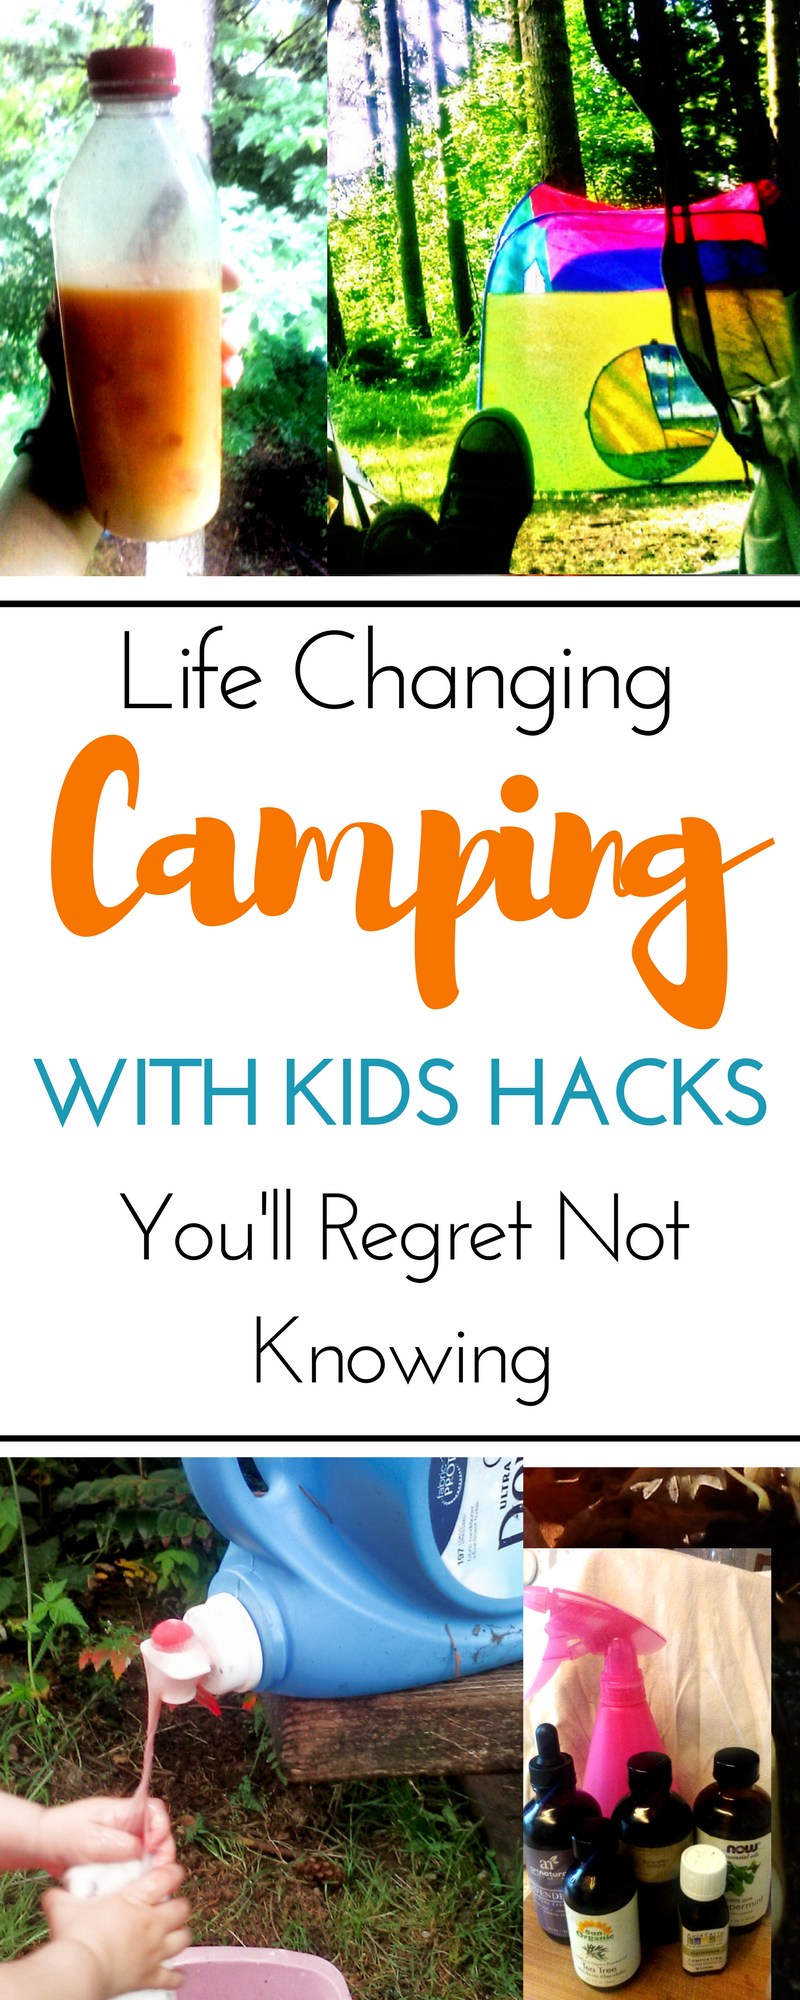 Photo of Family tent camping hacks and ideas for camping with children